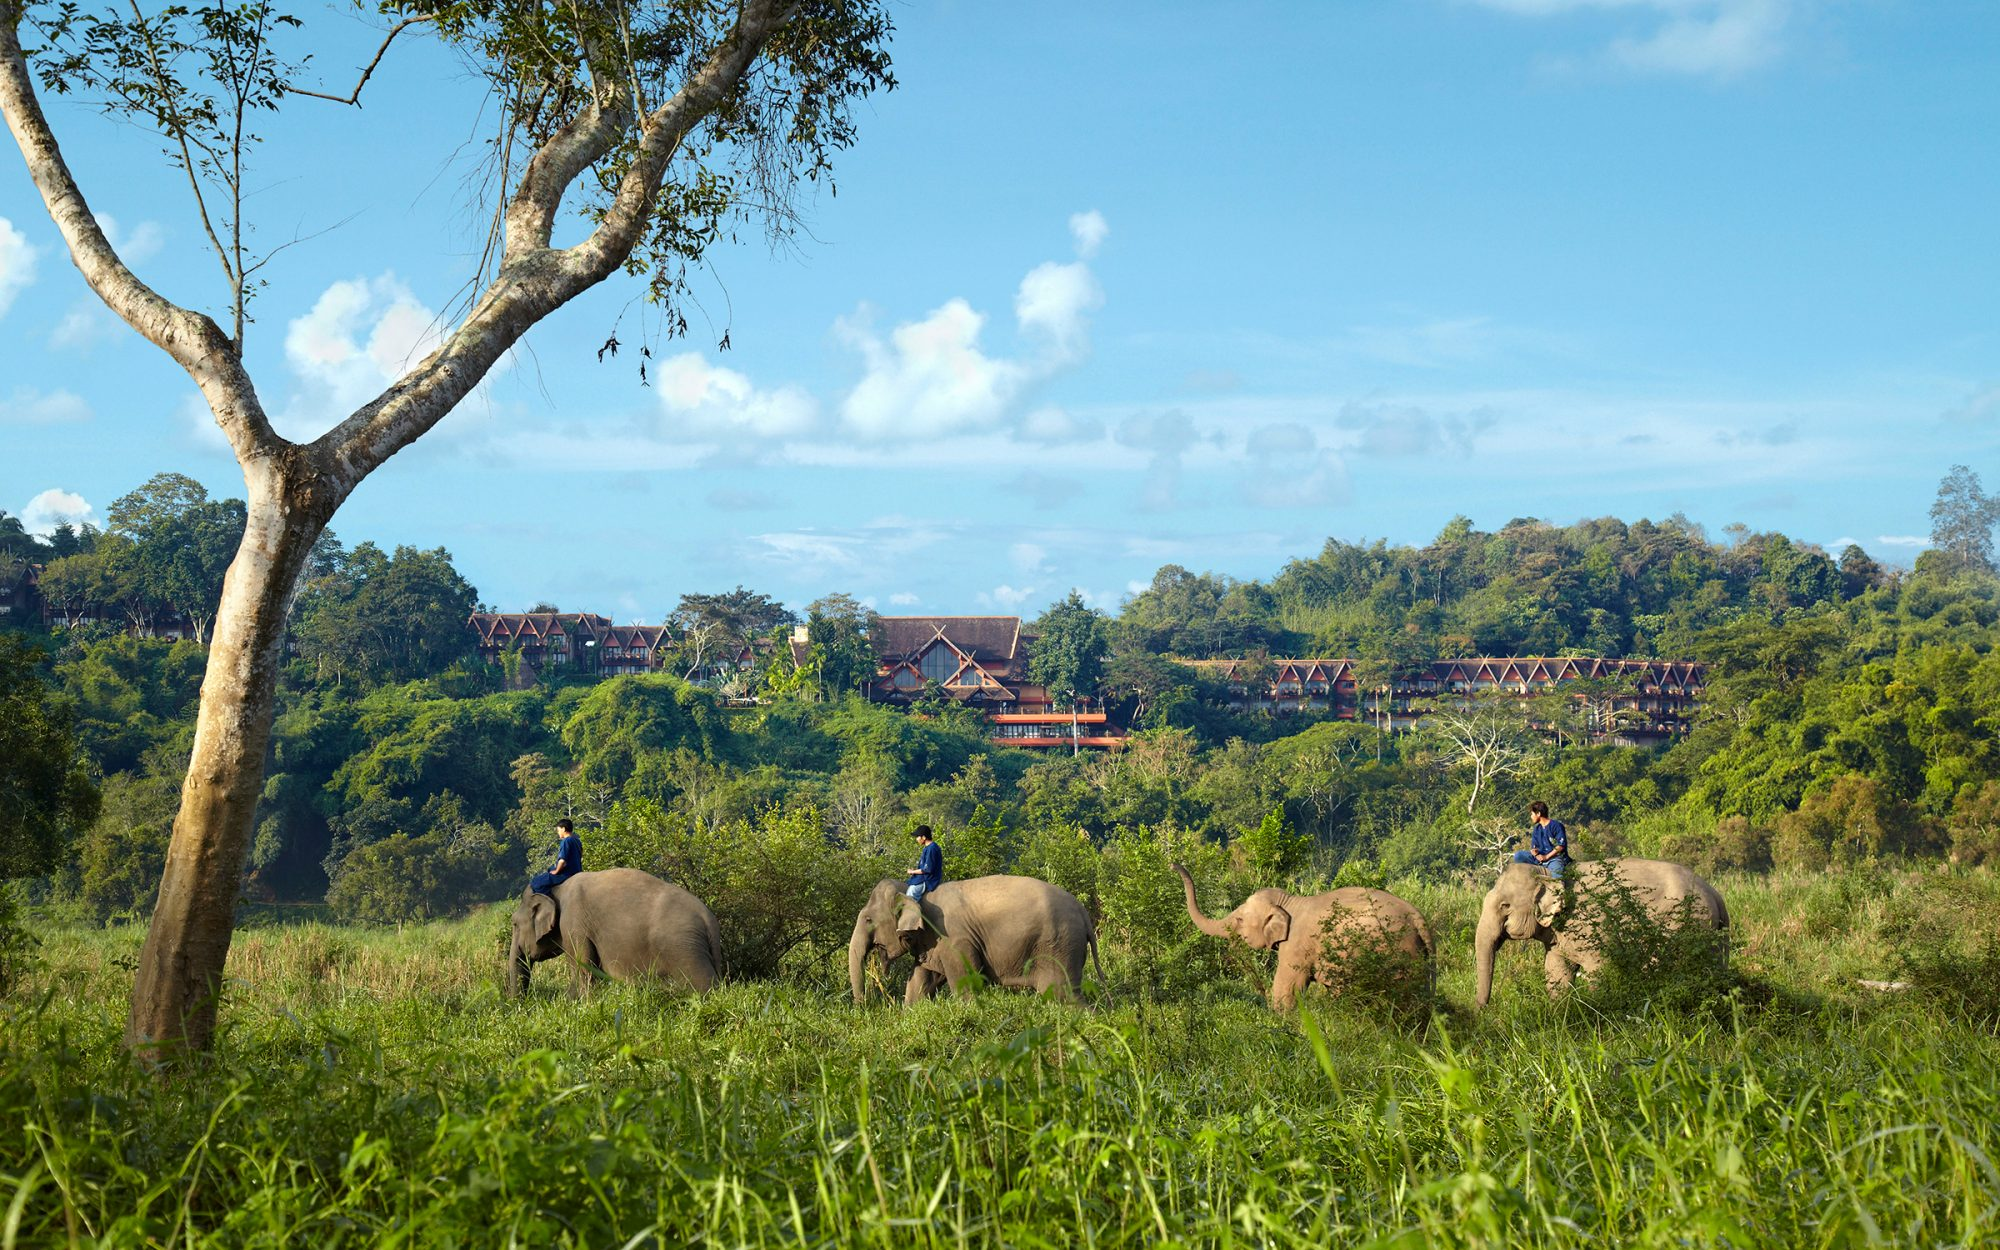 Anantara Golden Triangle Elephant Camp in Thailand